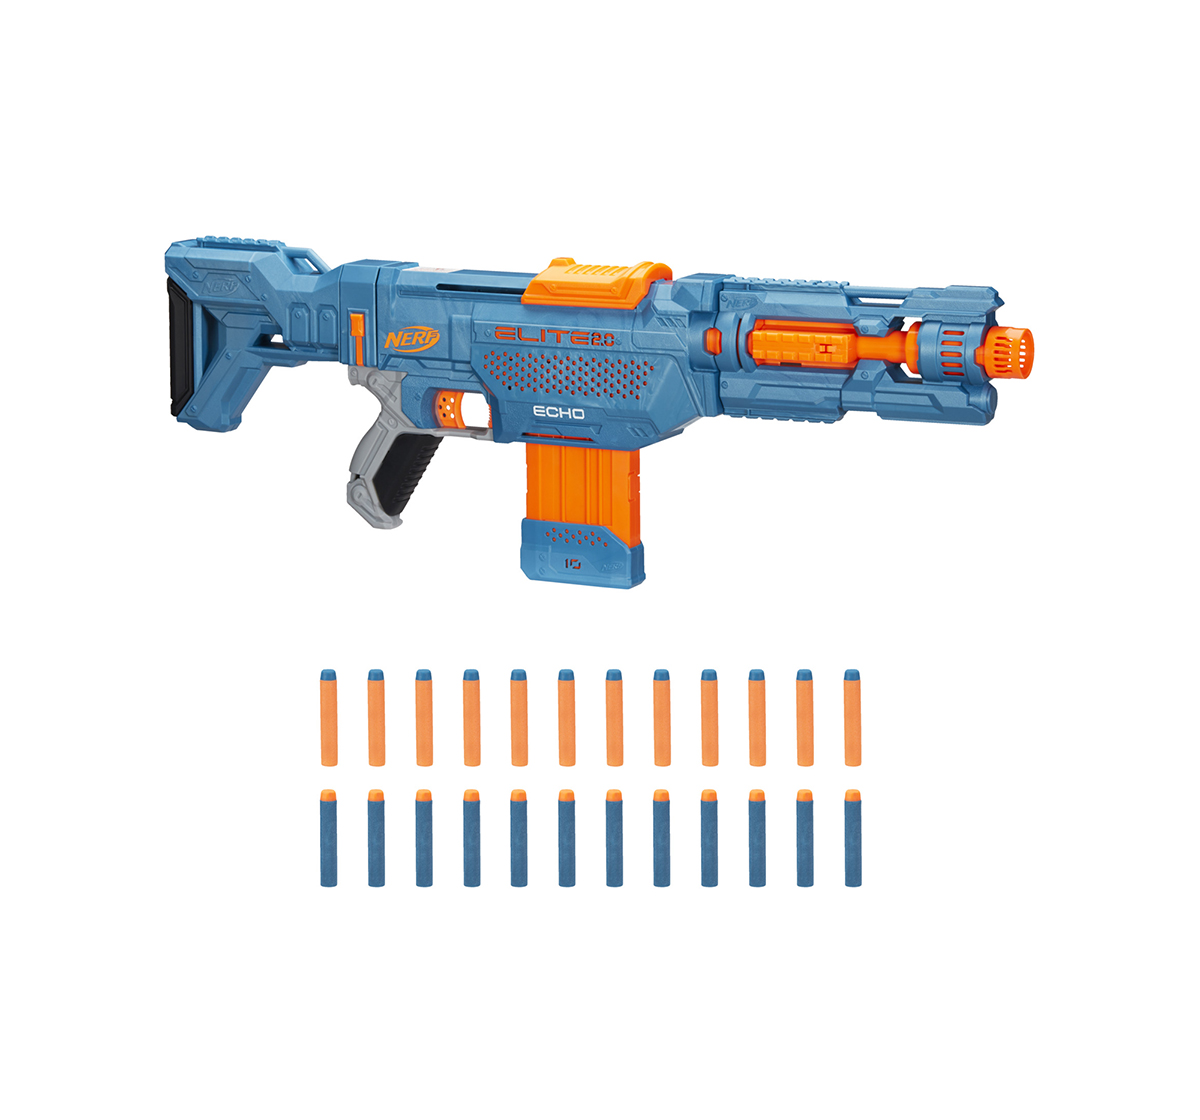 Nerf | Nerf Elite 2.0 Echo CS-10 Blaster -- 24 Official Nerf Darts, 10-Dart Clip, Removable Stock and Barrel Extension, 5 Tactical Rails Blasters for BOYS age 8Y+